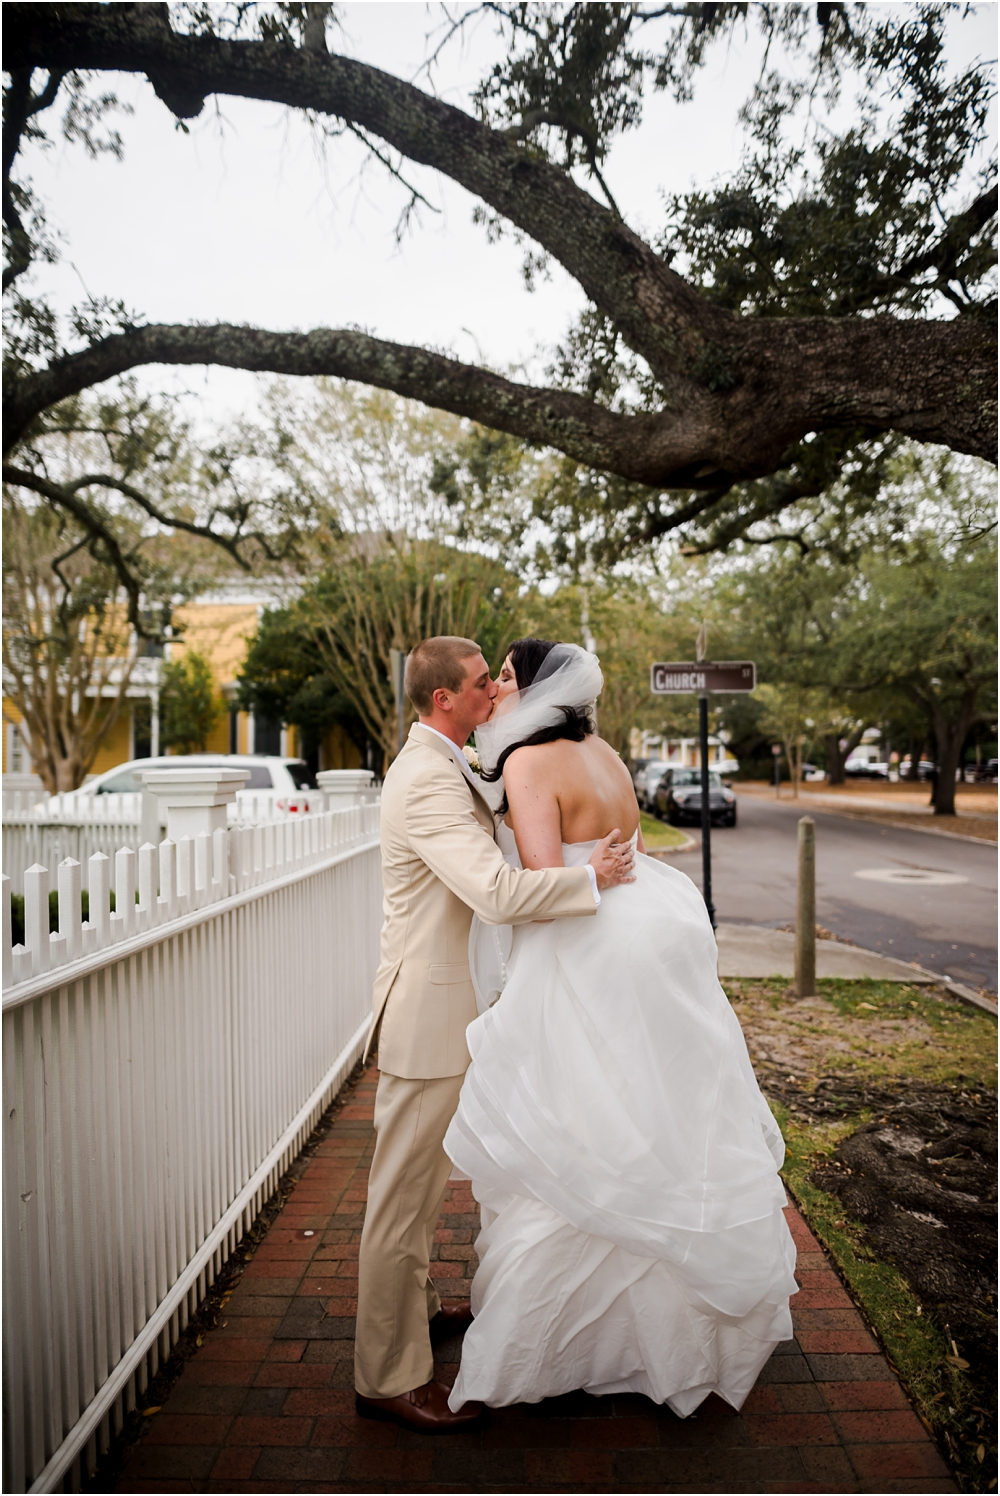 pensacola-wedding-photographer-kiersten-grant-100.jpg